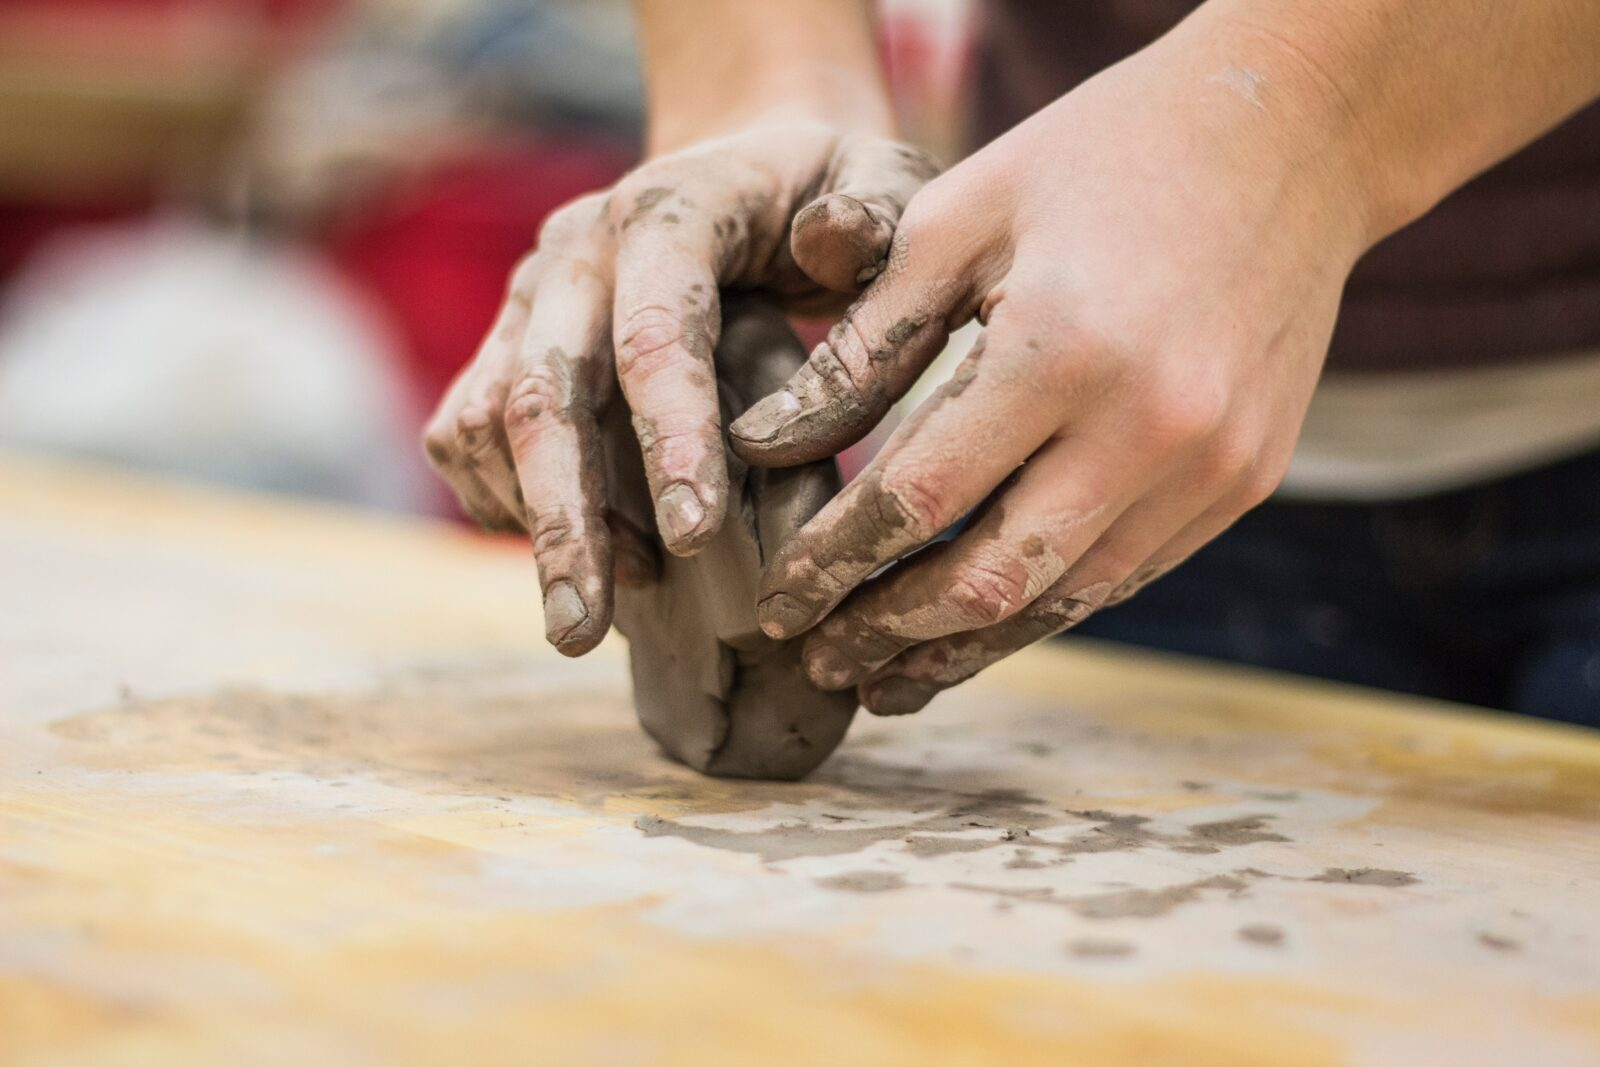 Two hands of a caucasian person working a block of clay on a light-colored wood surface.